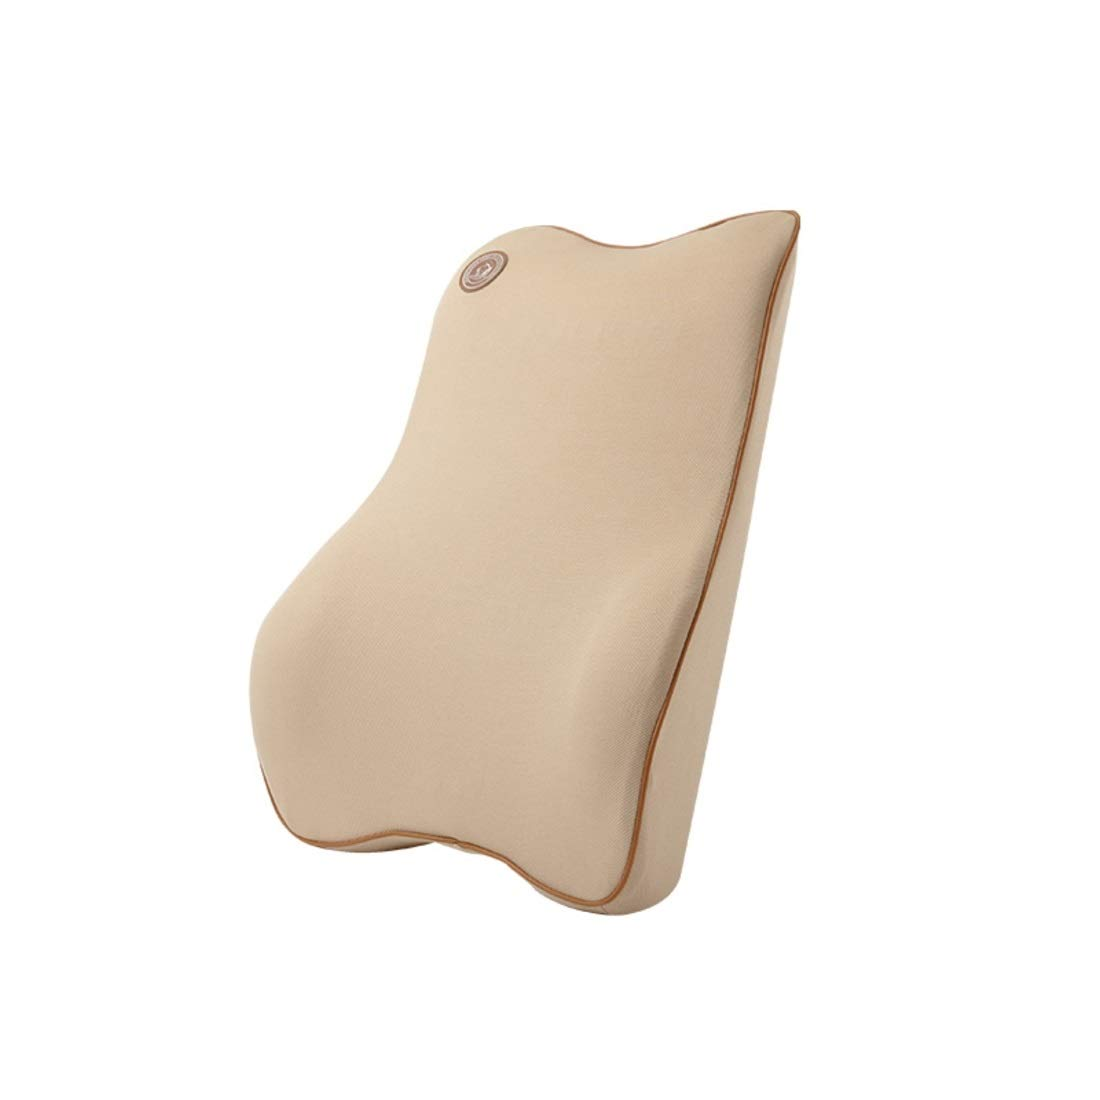 BAOYIT Lumbar Support Pillow, Memory Foam Back Cushion for Car Seat, Office/Computer Chair and Wheelchair (Color : Beige) by BAOYIT